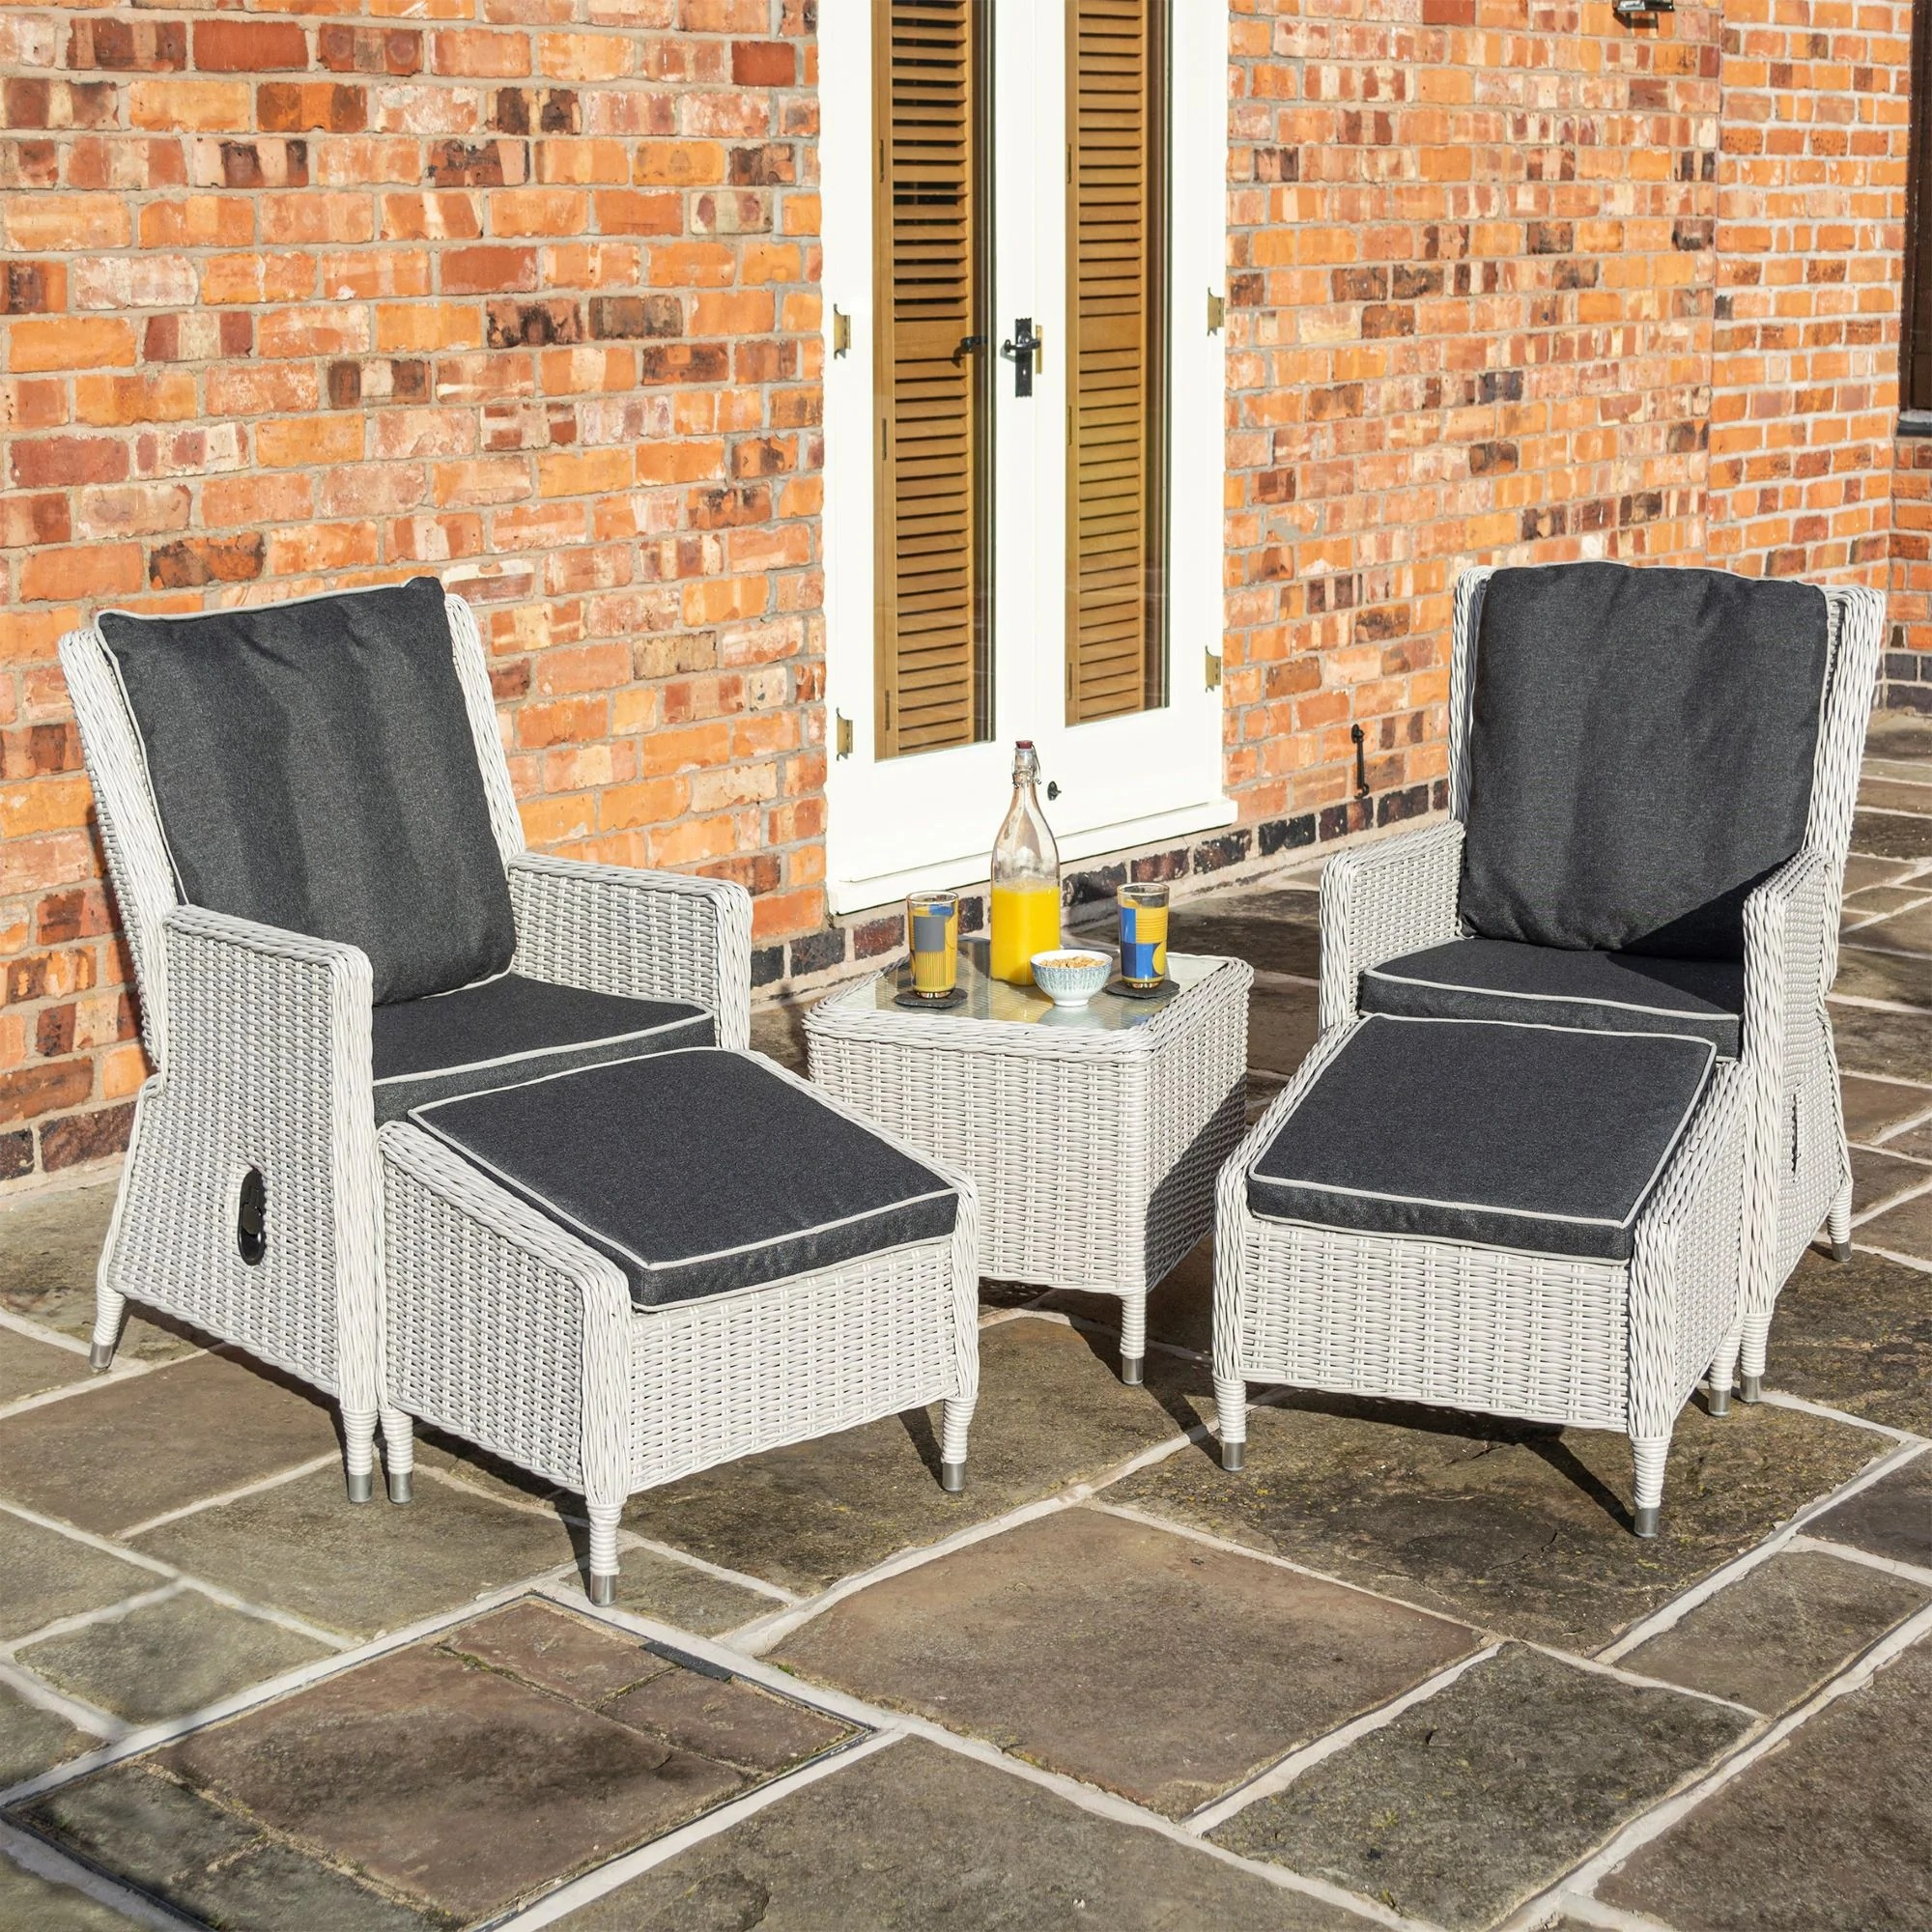 Heritage Conservatory Recliners Set Of 2 Garden Furniture And Garden Building Specialists Heritage Gardens